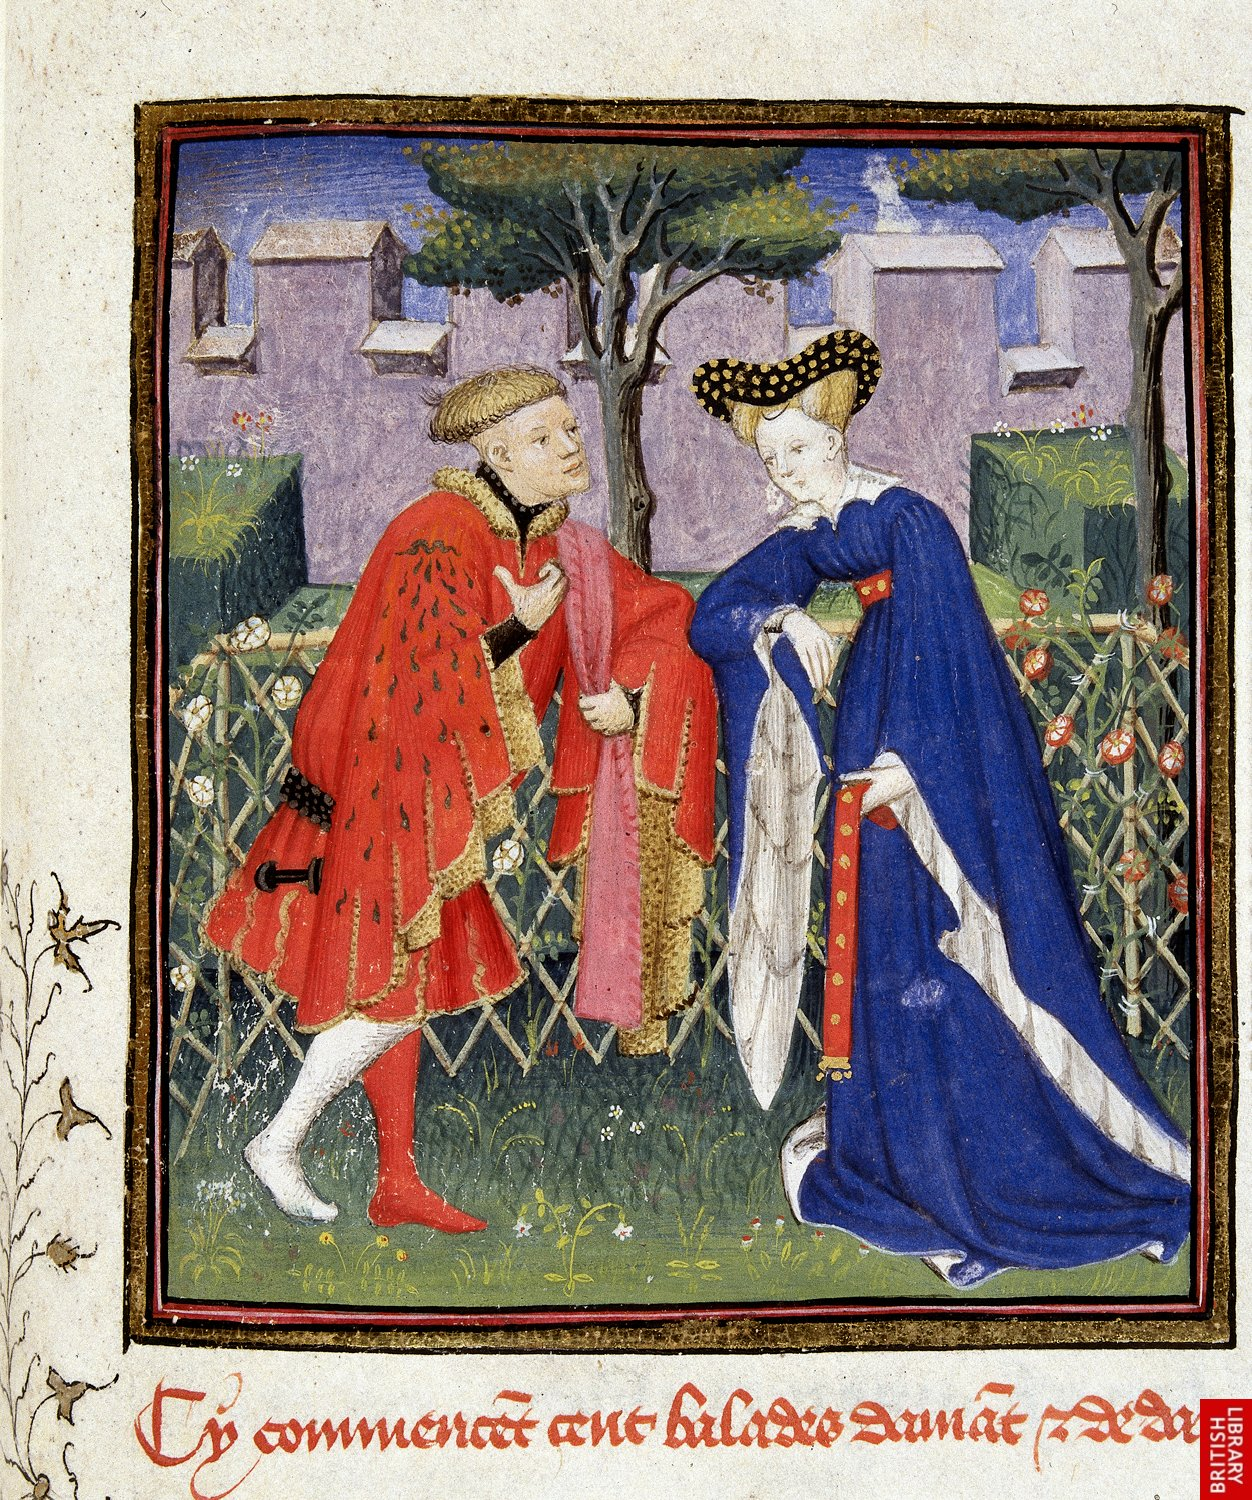 1410 - The Book of the Queen - by Master of the Cite Des Dames